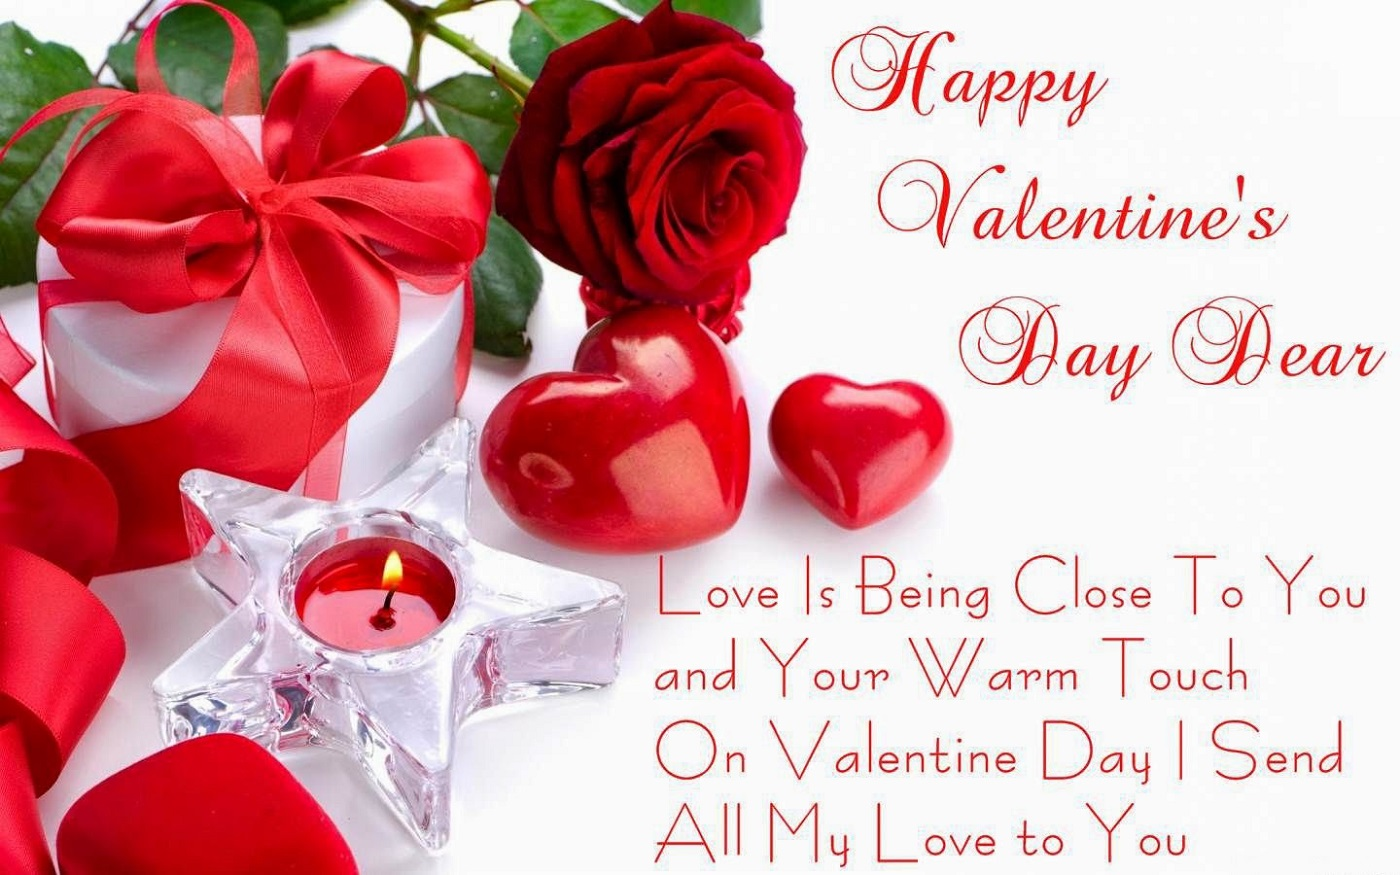 Happy Valentines Day Messages Valentines day SMS Quotes – Happy Valentines Day Cards